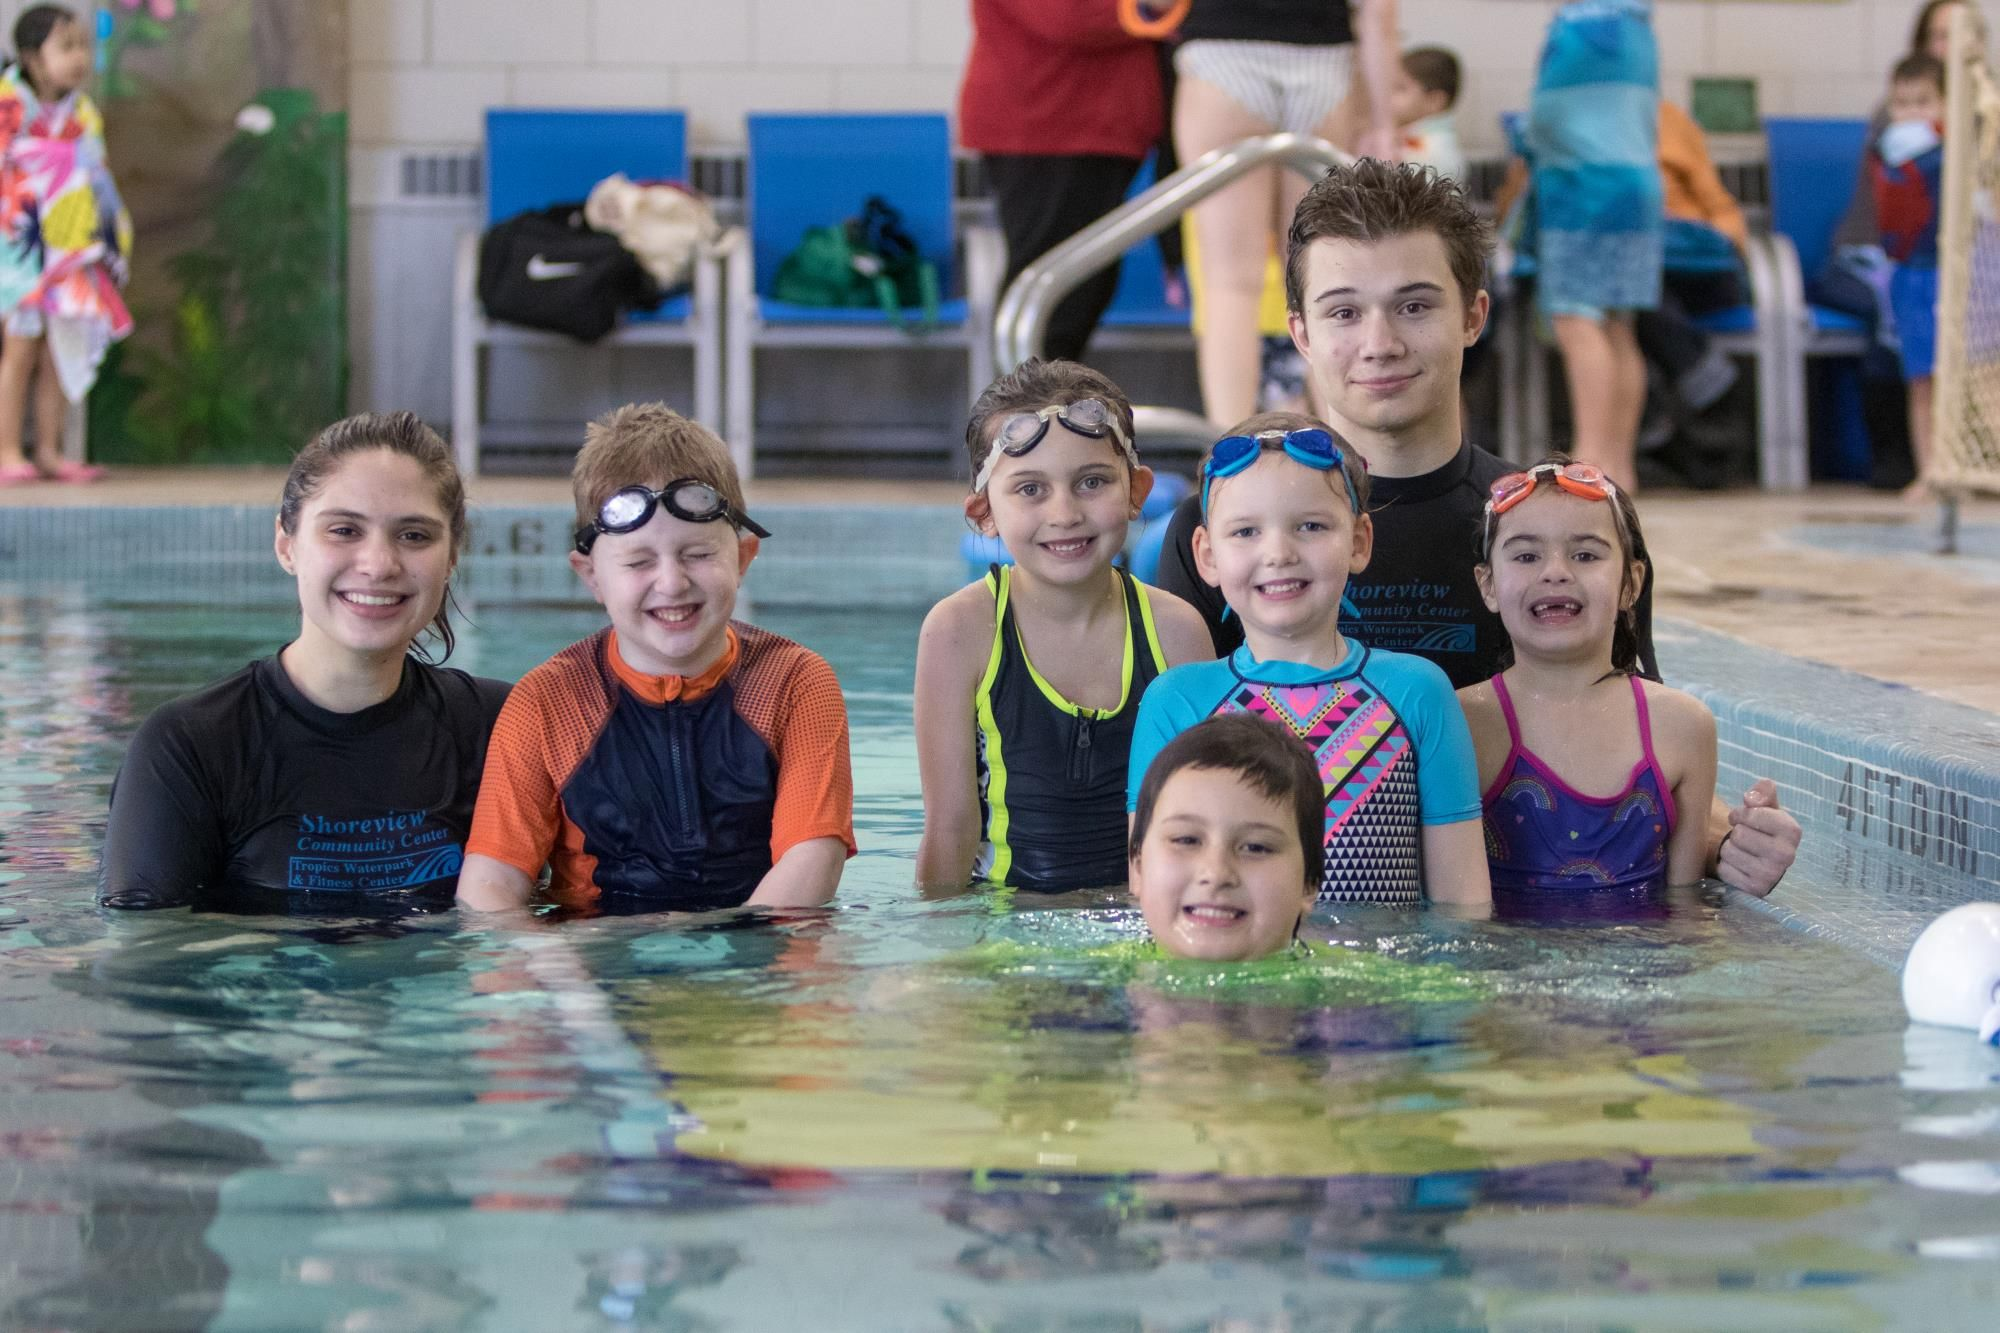 Wd Swim Richmond Inc Is One Of The Leading Swimming Clubs In